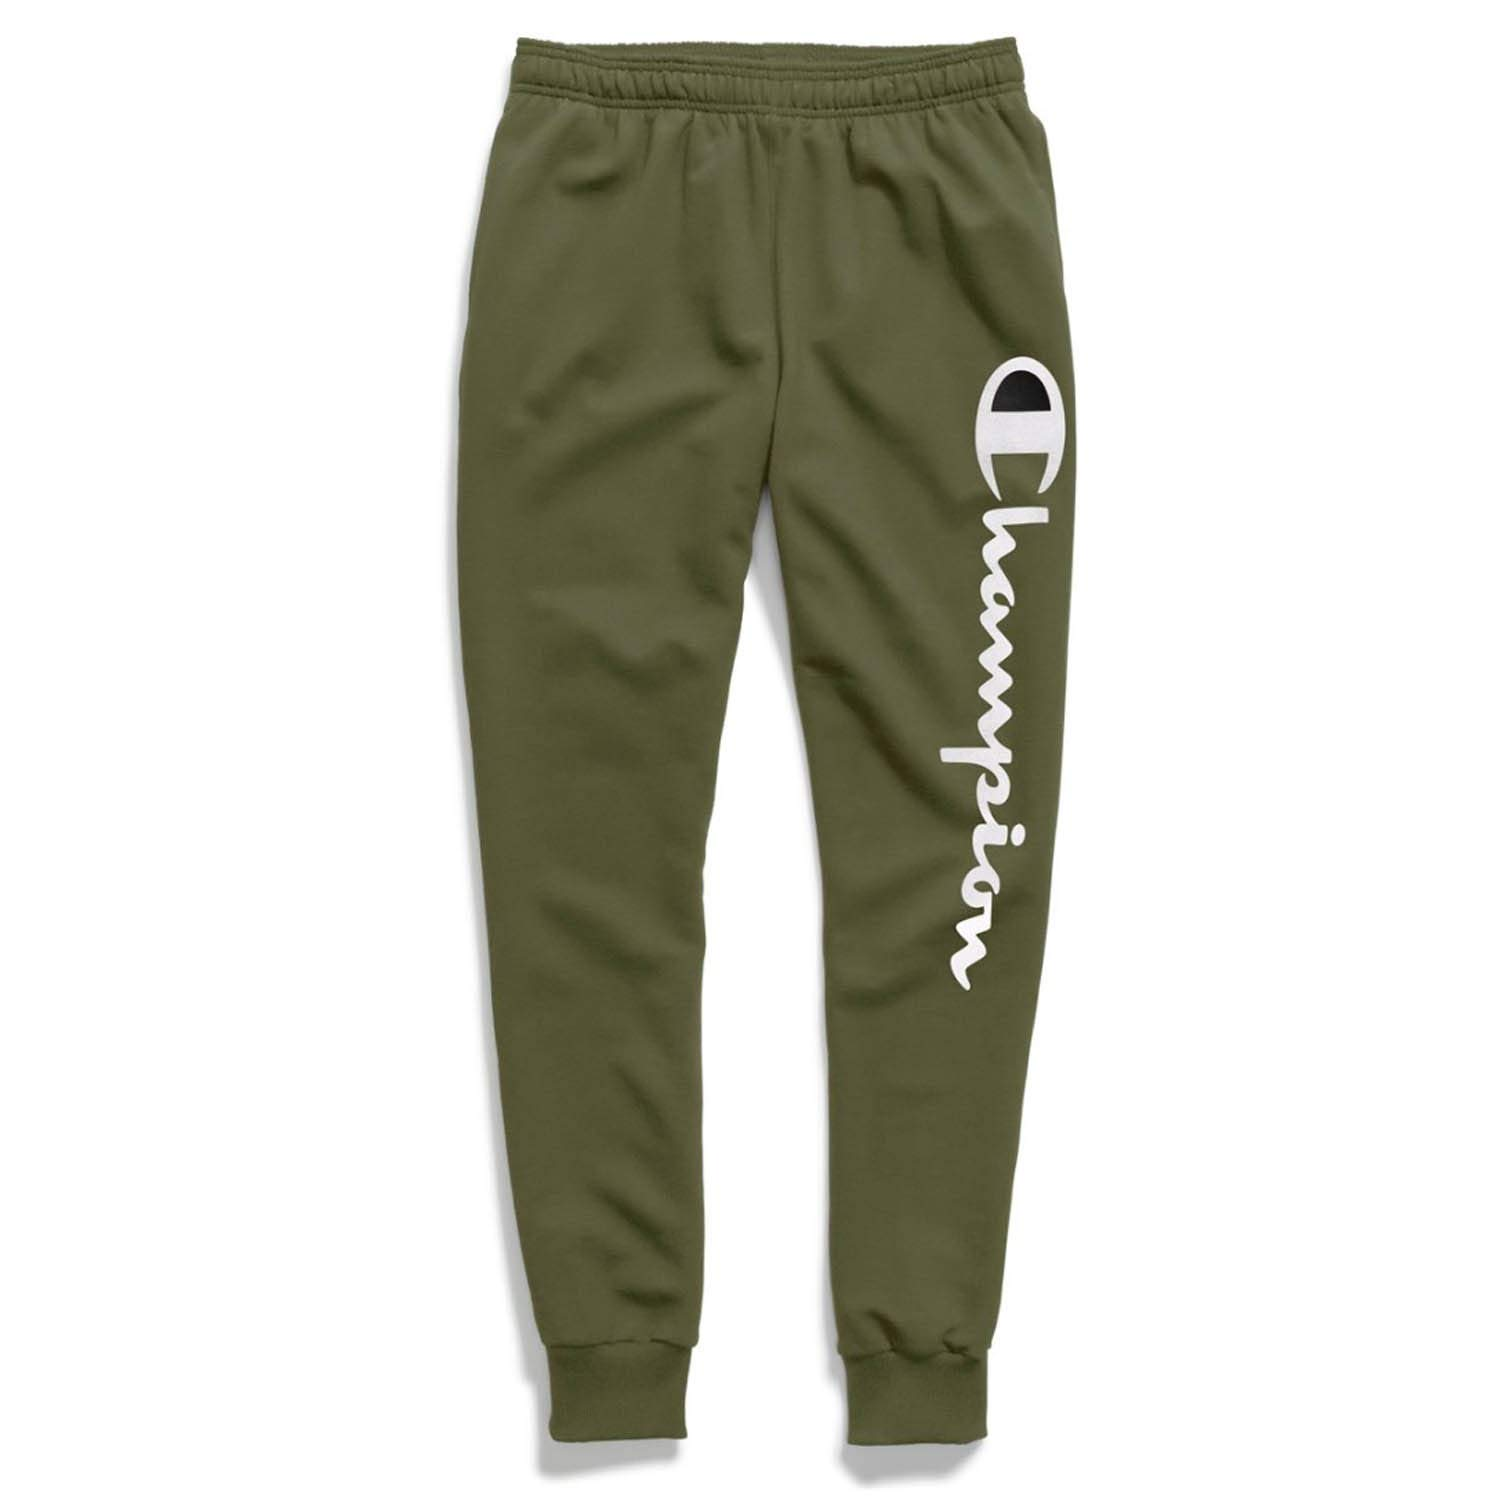 Champion Mens Powerblend Fleece Joggers, M, Vertical Cargo Olive by Champion